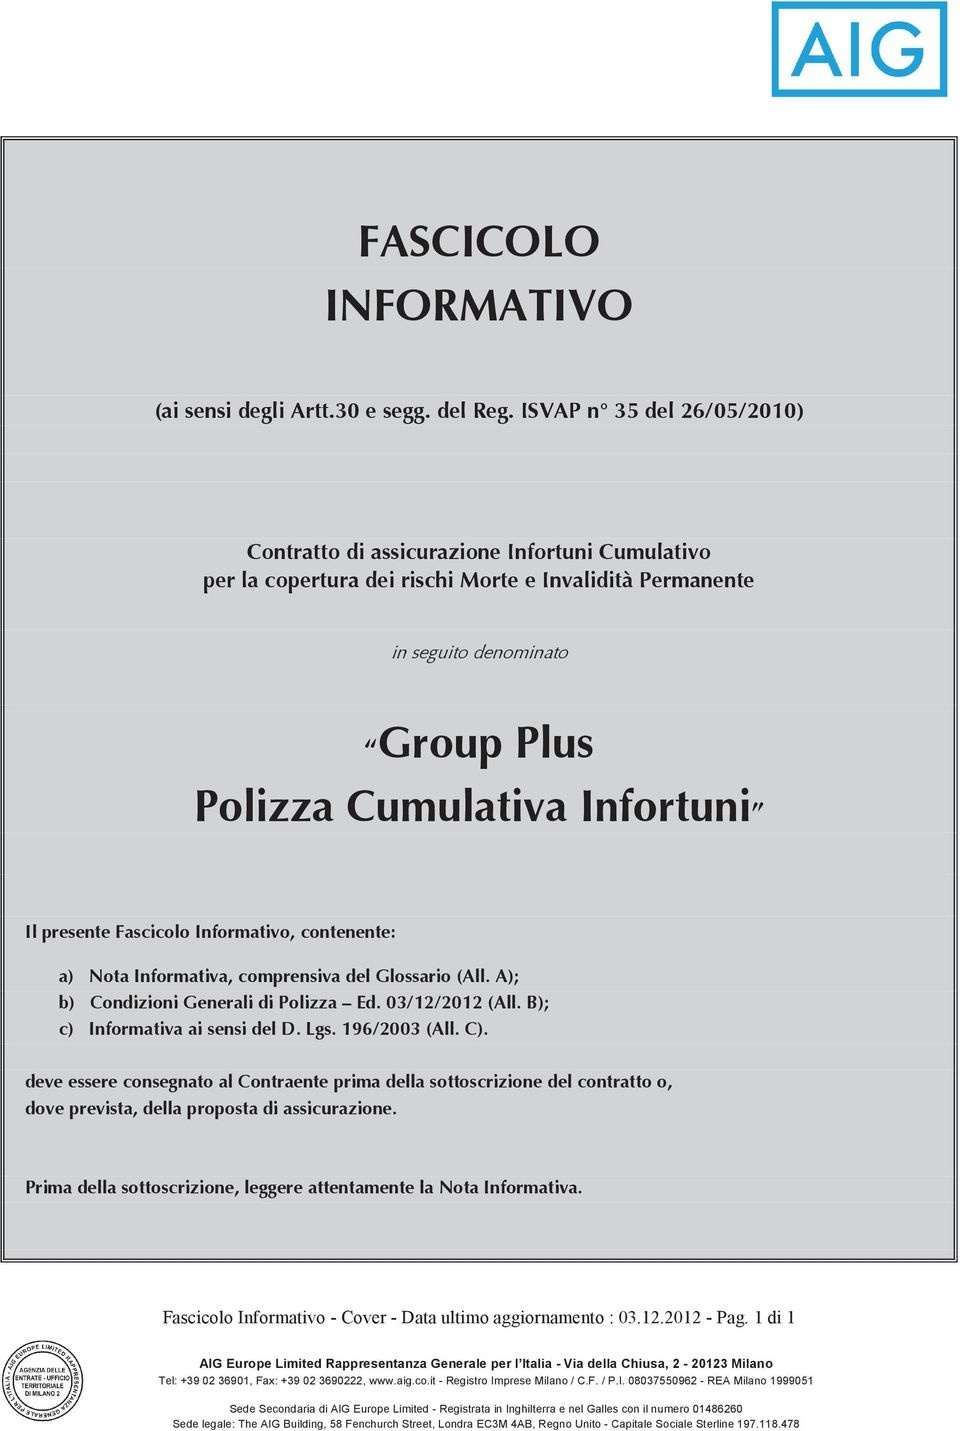 # *%$$$+)$$%'$%$$$1 $*+*1+$+$%&'$ )$$%'$1) $($)* Fascicolo Informativo - Cover - Data ultimo